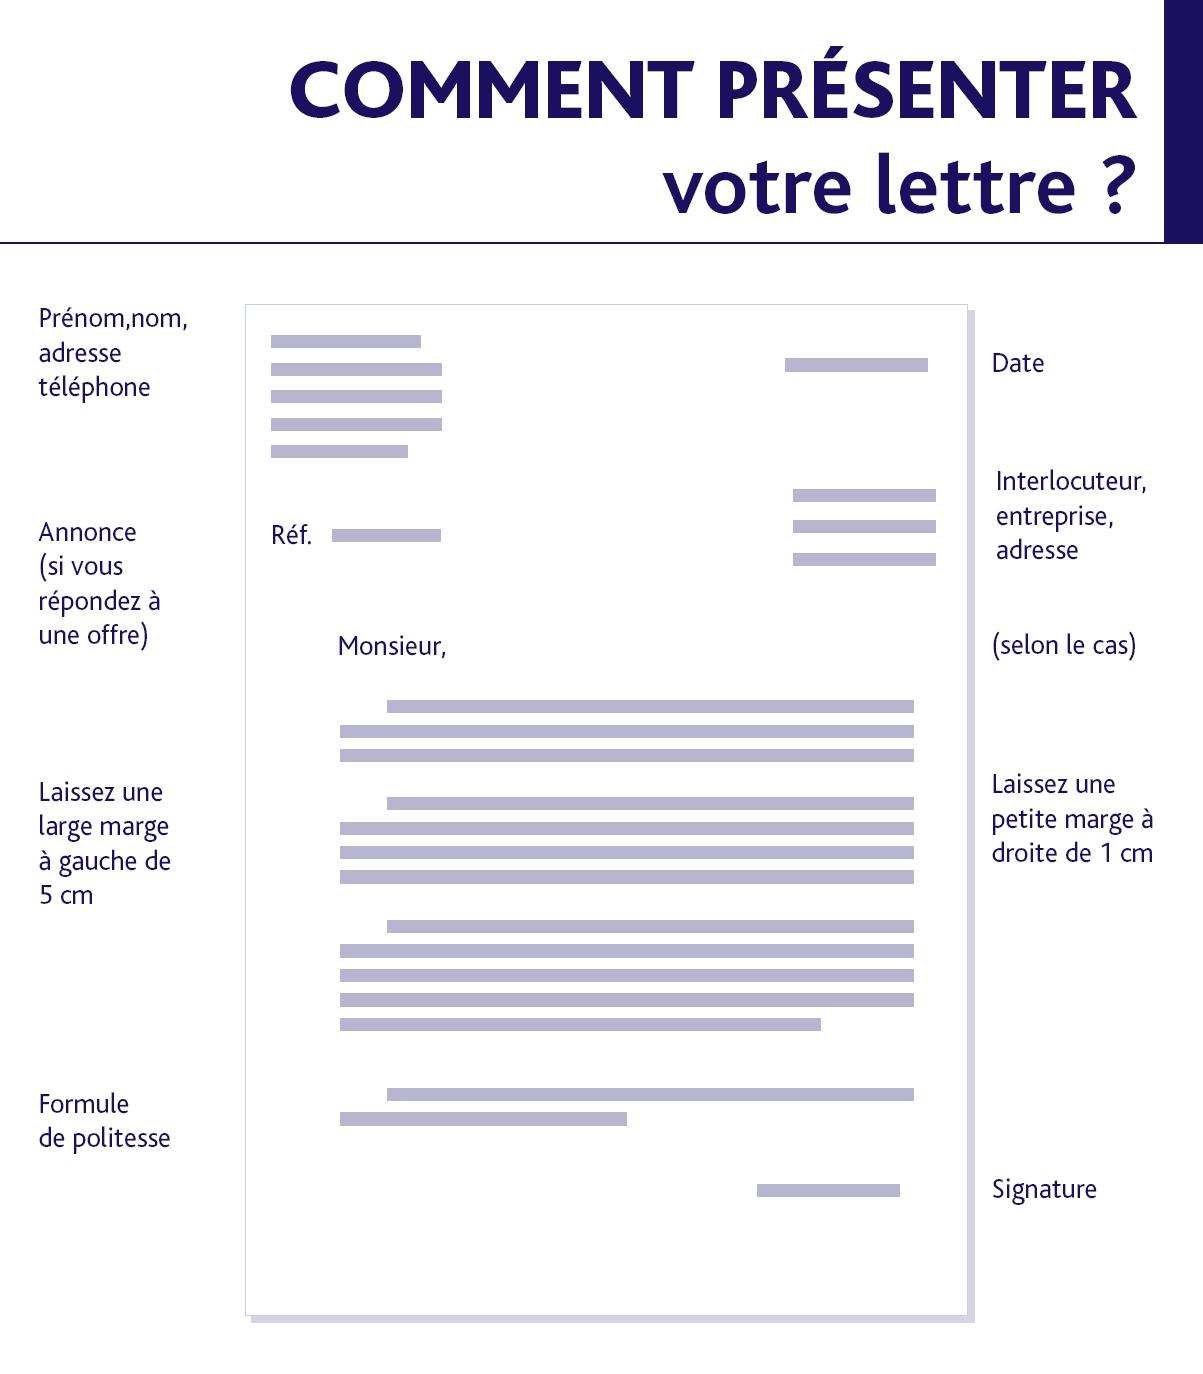 Prestement Prespiote Lettre De Motivation: Guide Pour Agir Lettre De Motivation Pole Emploi